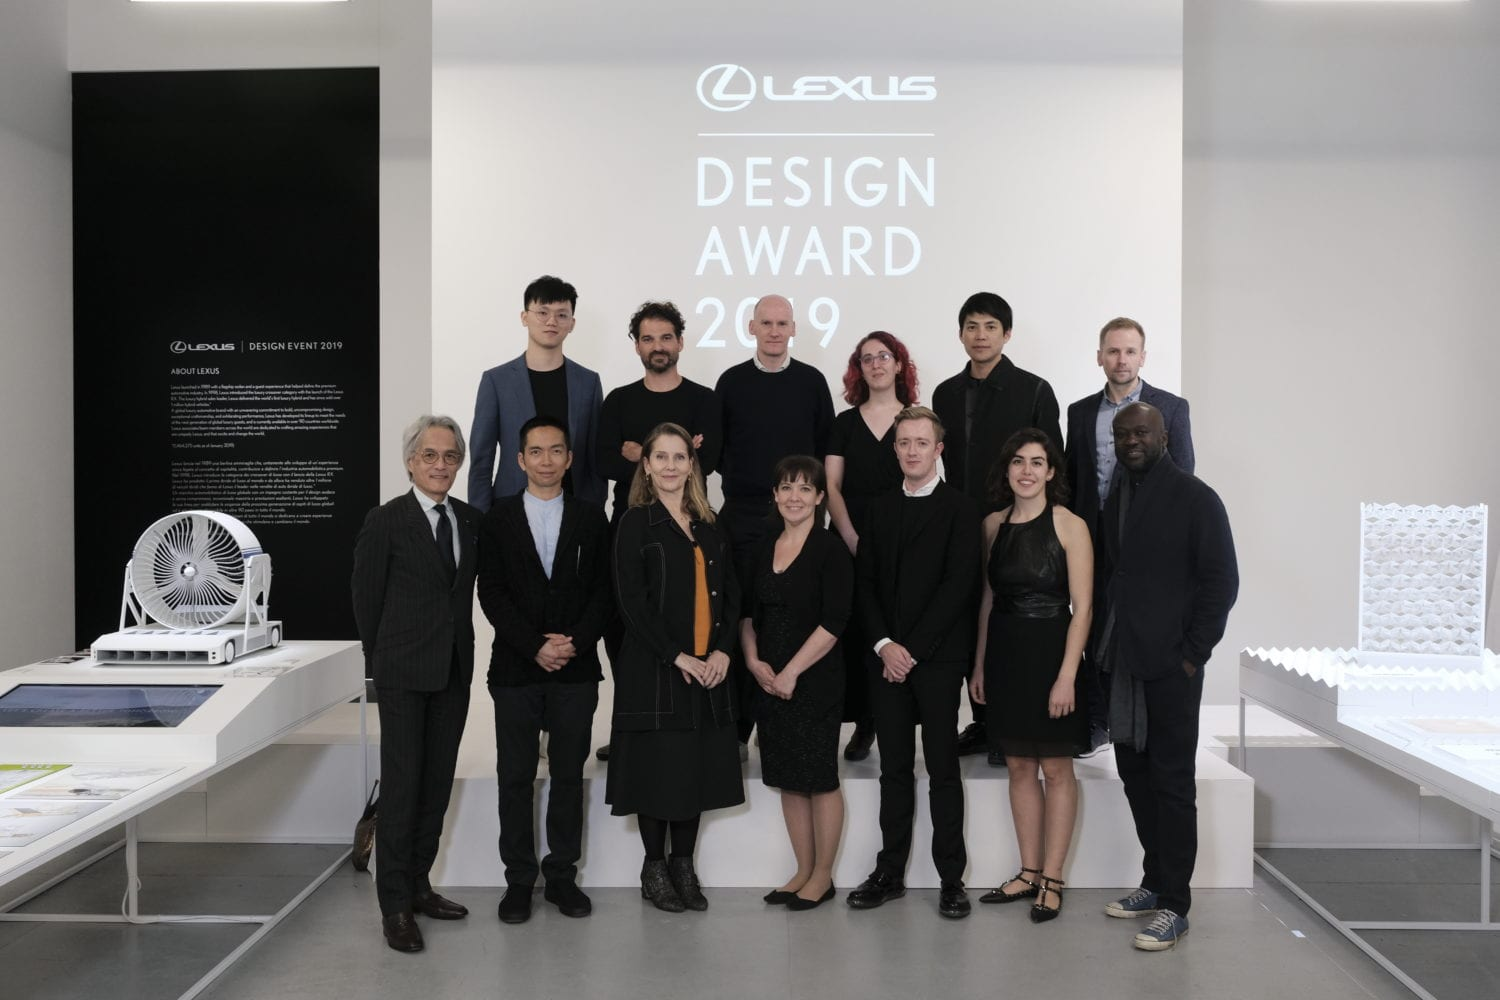 Lexus Design Award 2019 Group Shot Yellowtrace 01